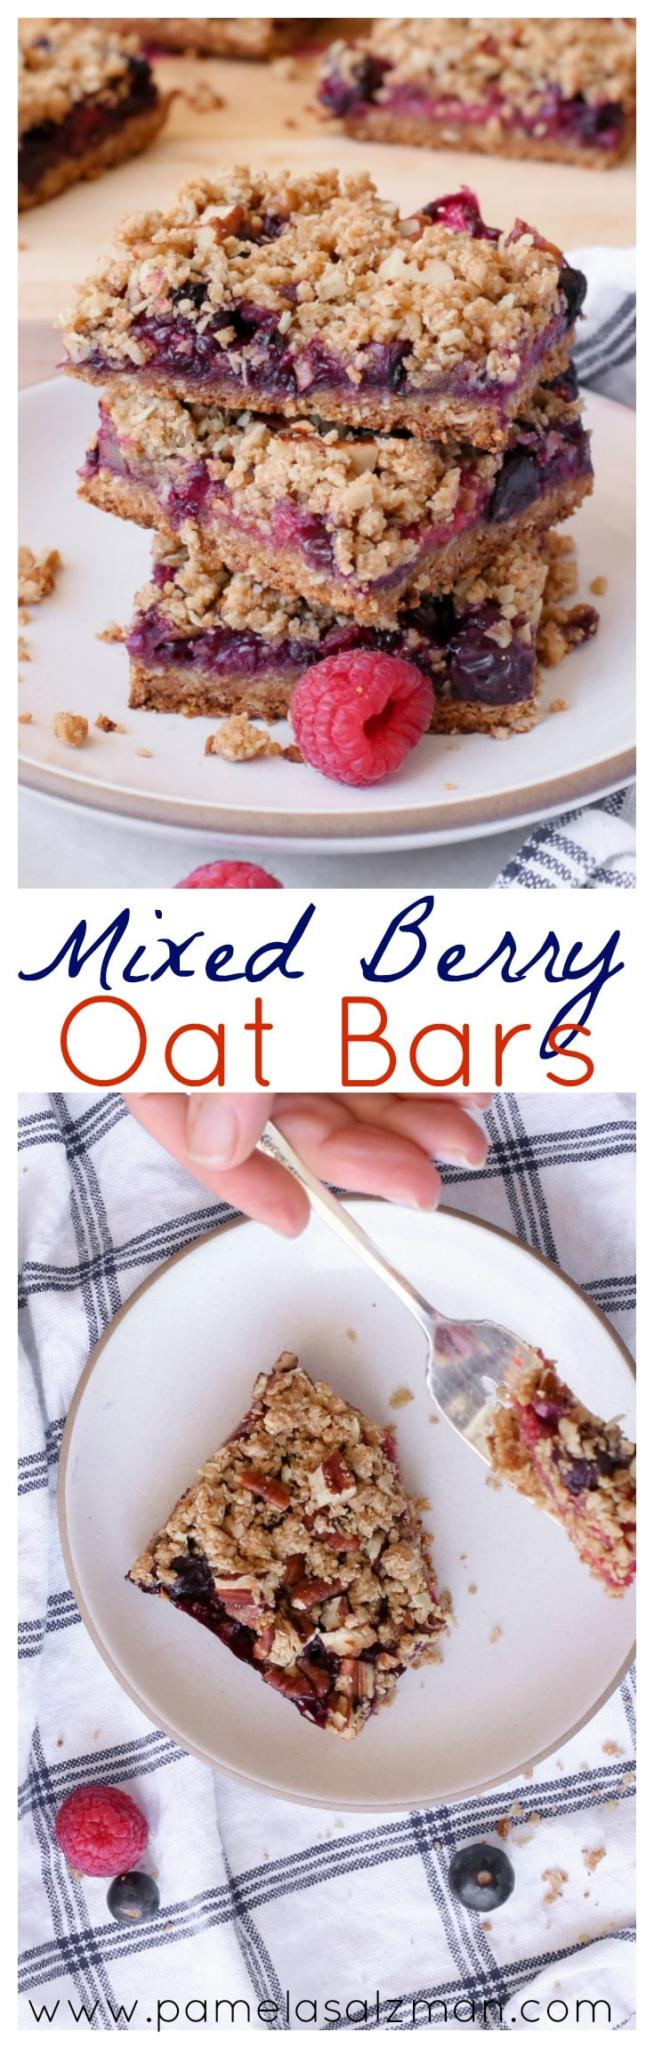 Mixed Berry Oat Bars | Pamela Salzman